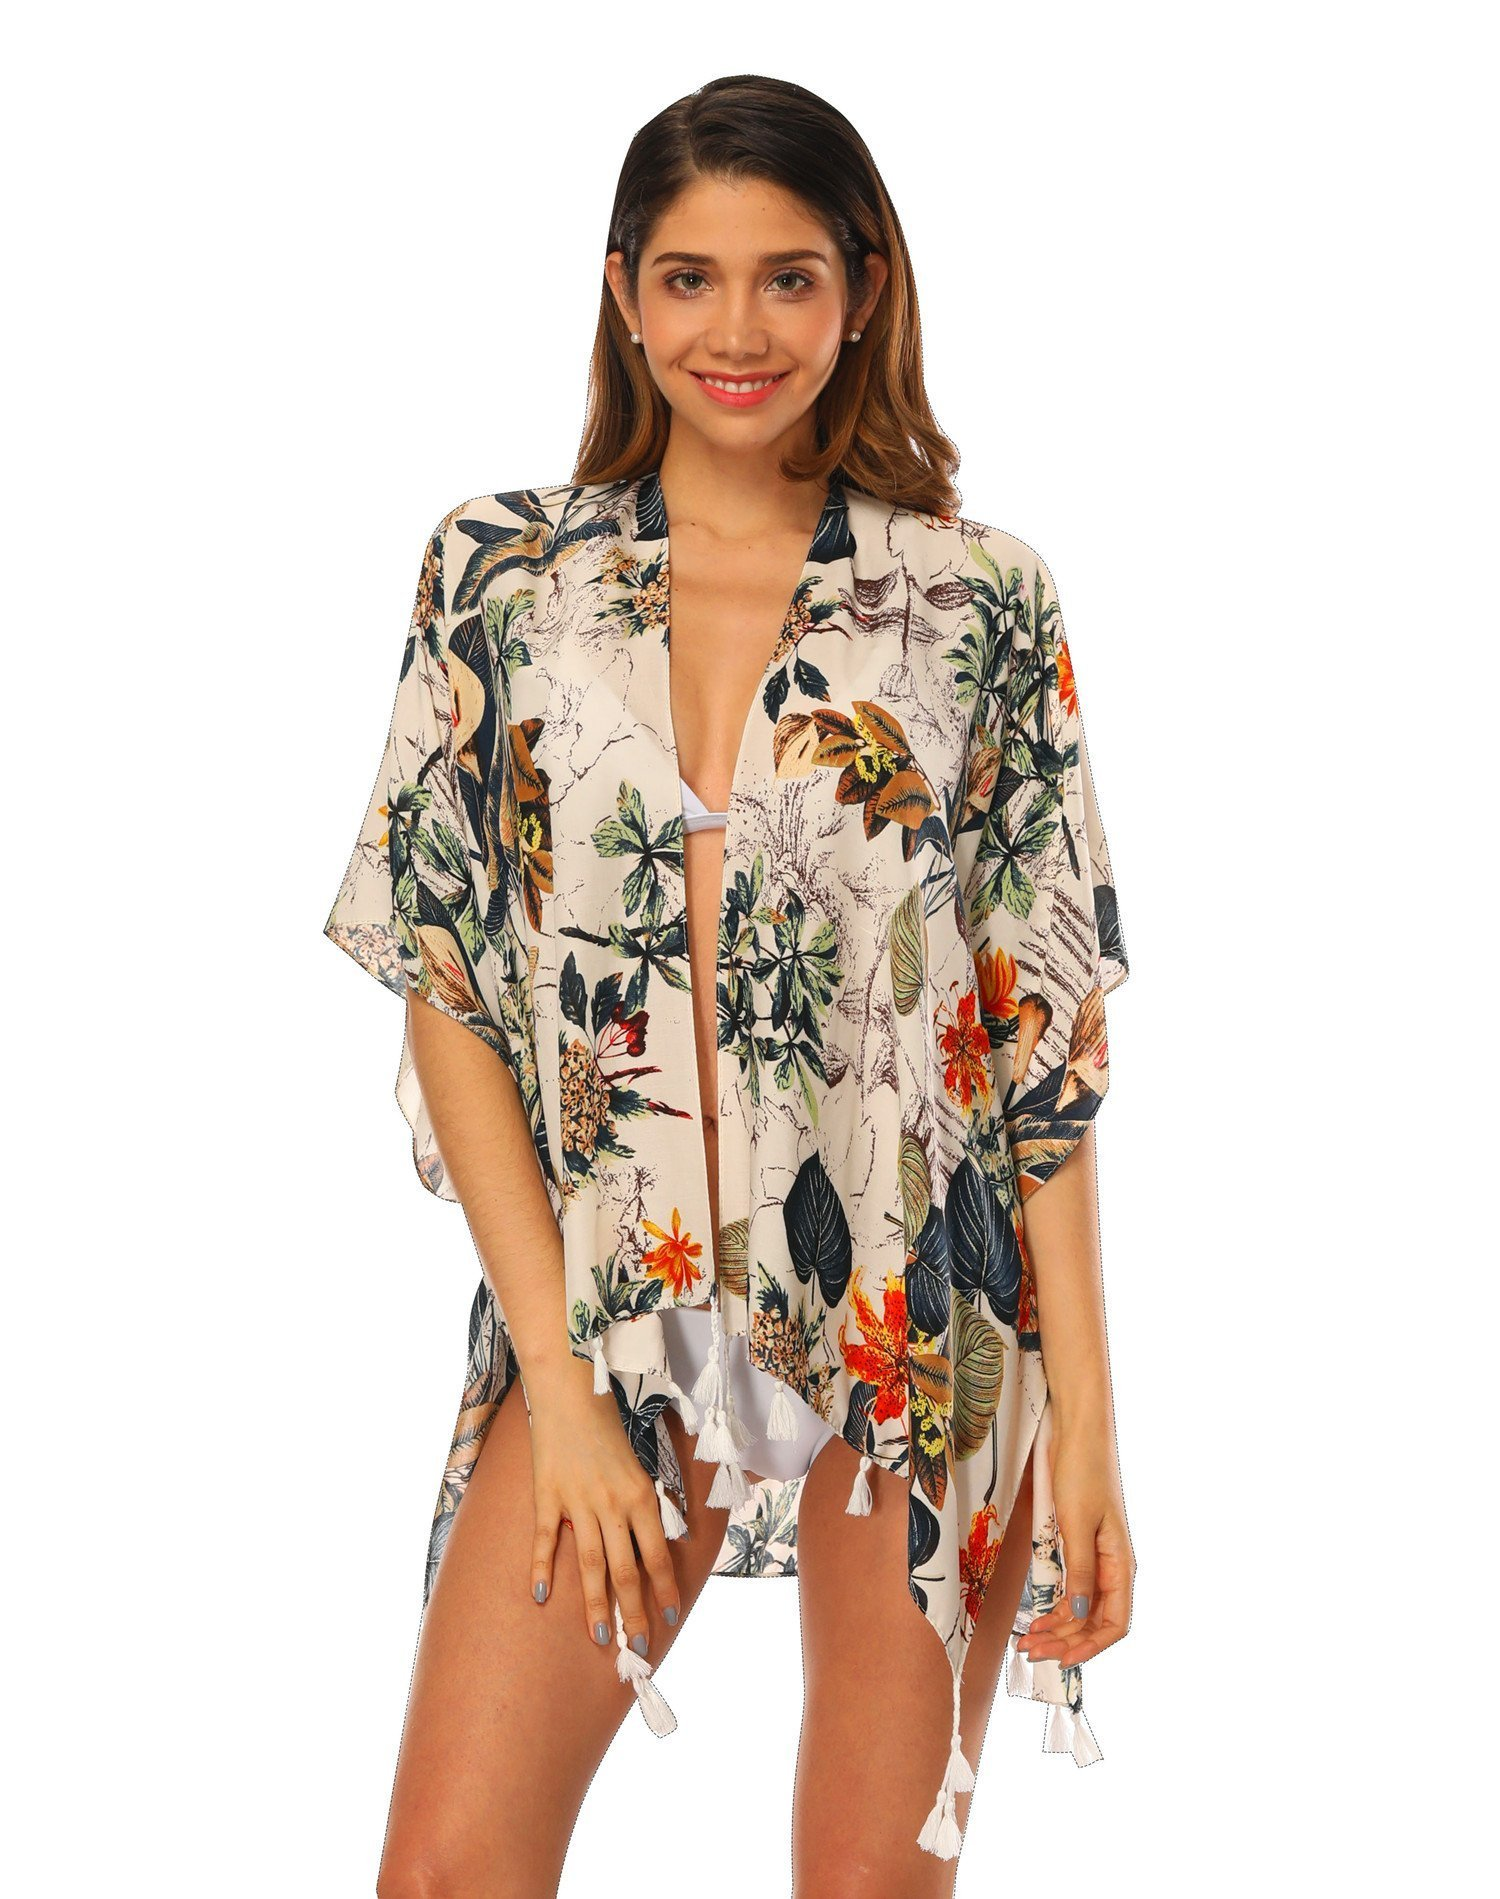 Women's Beach Cover up Swimsuit Bikini Kimino Cardigan with Floral Print (Color 5)